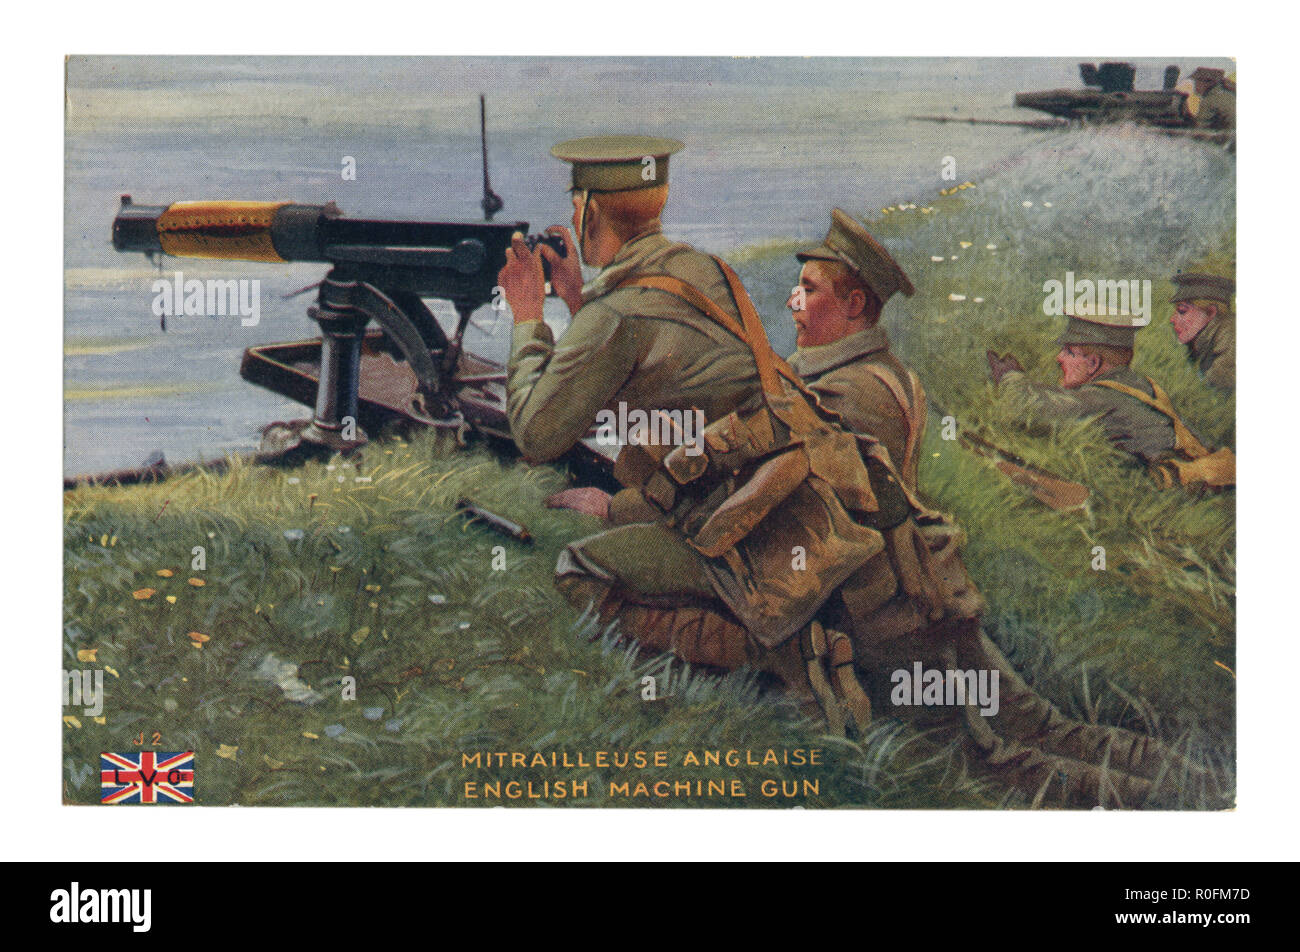 French historical postcard: British machine gun team in position. The soldiers are preparing to fire on the enemy. Waiting for the attack to begin. - Stock Image